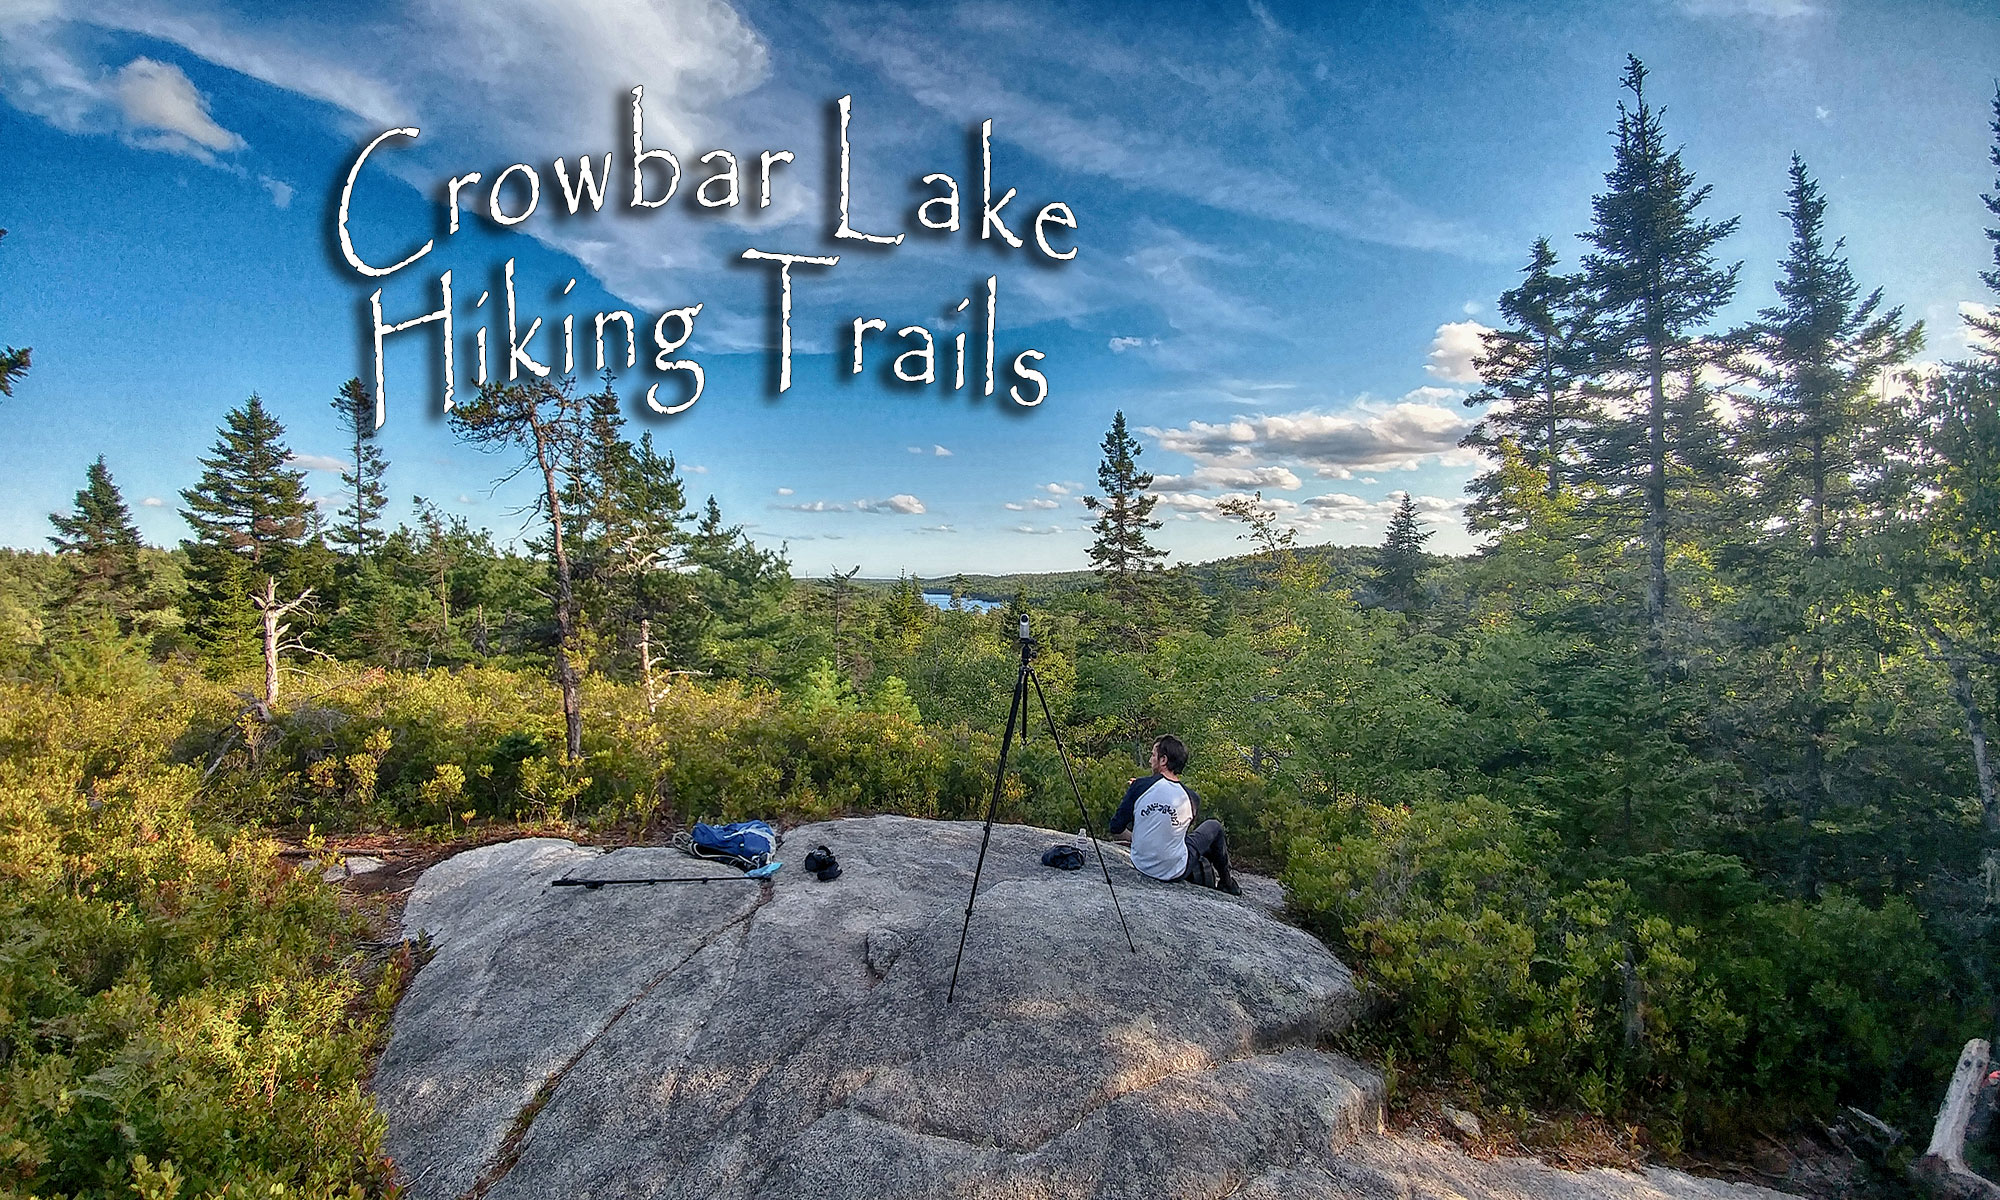 Crowbar Lake Hiking Trails